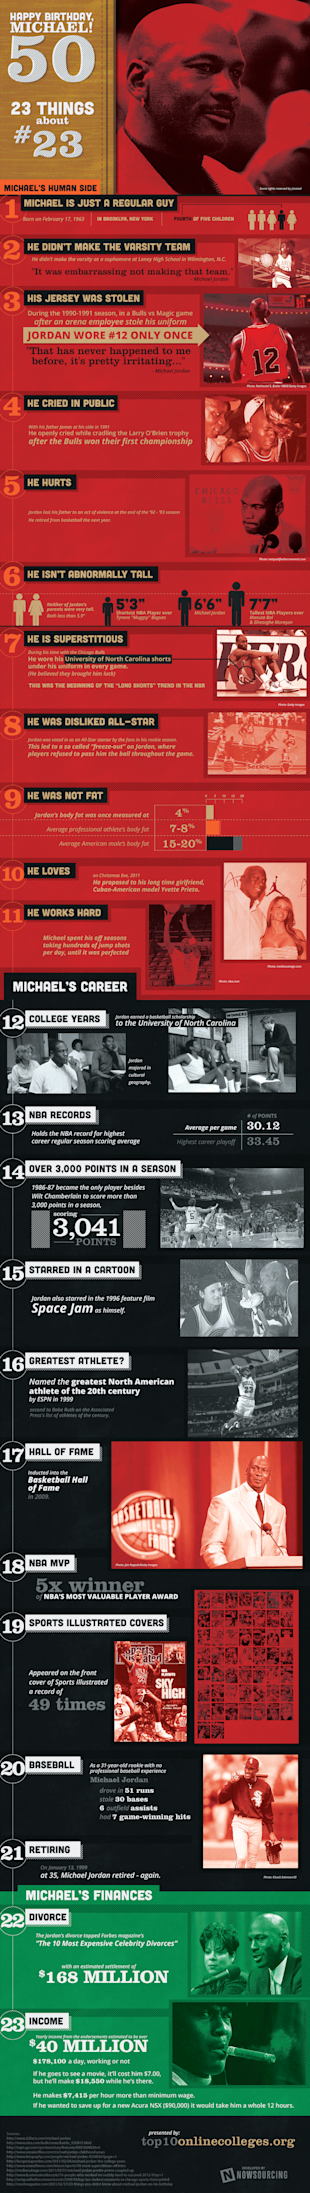 Michael Jordan Turns 50! (Infographic) image michael jordan4